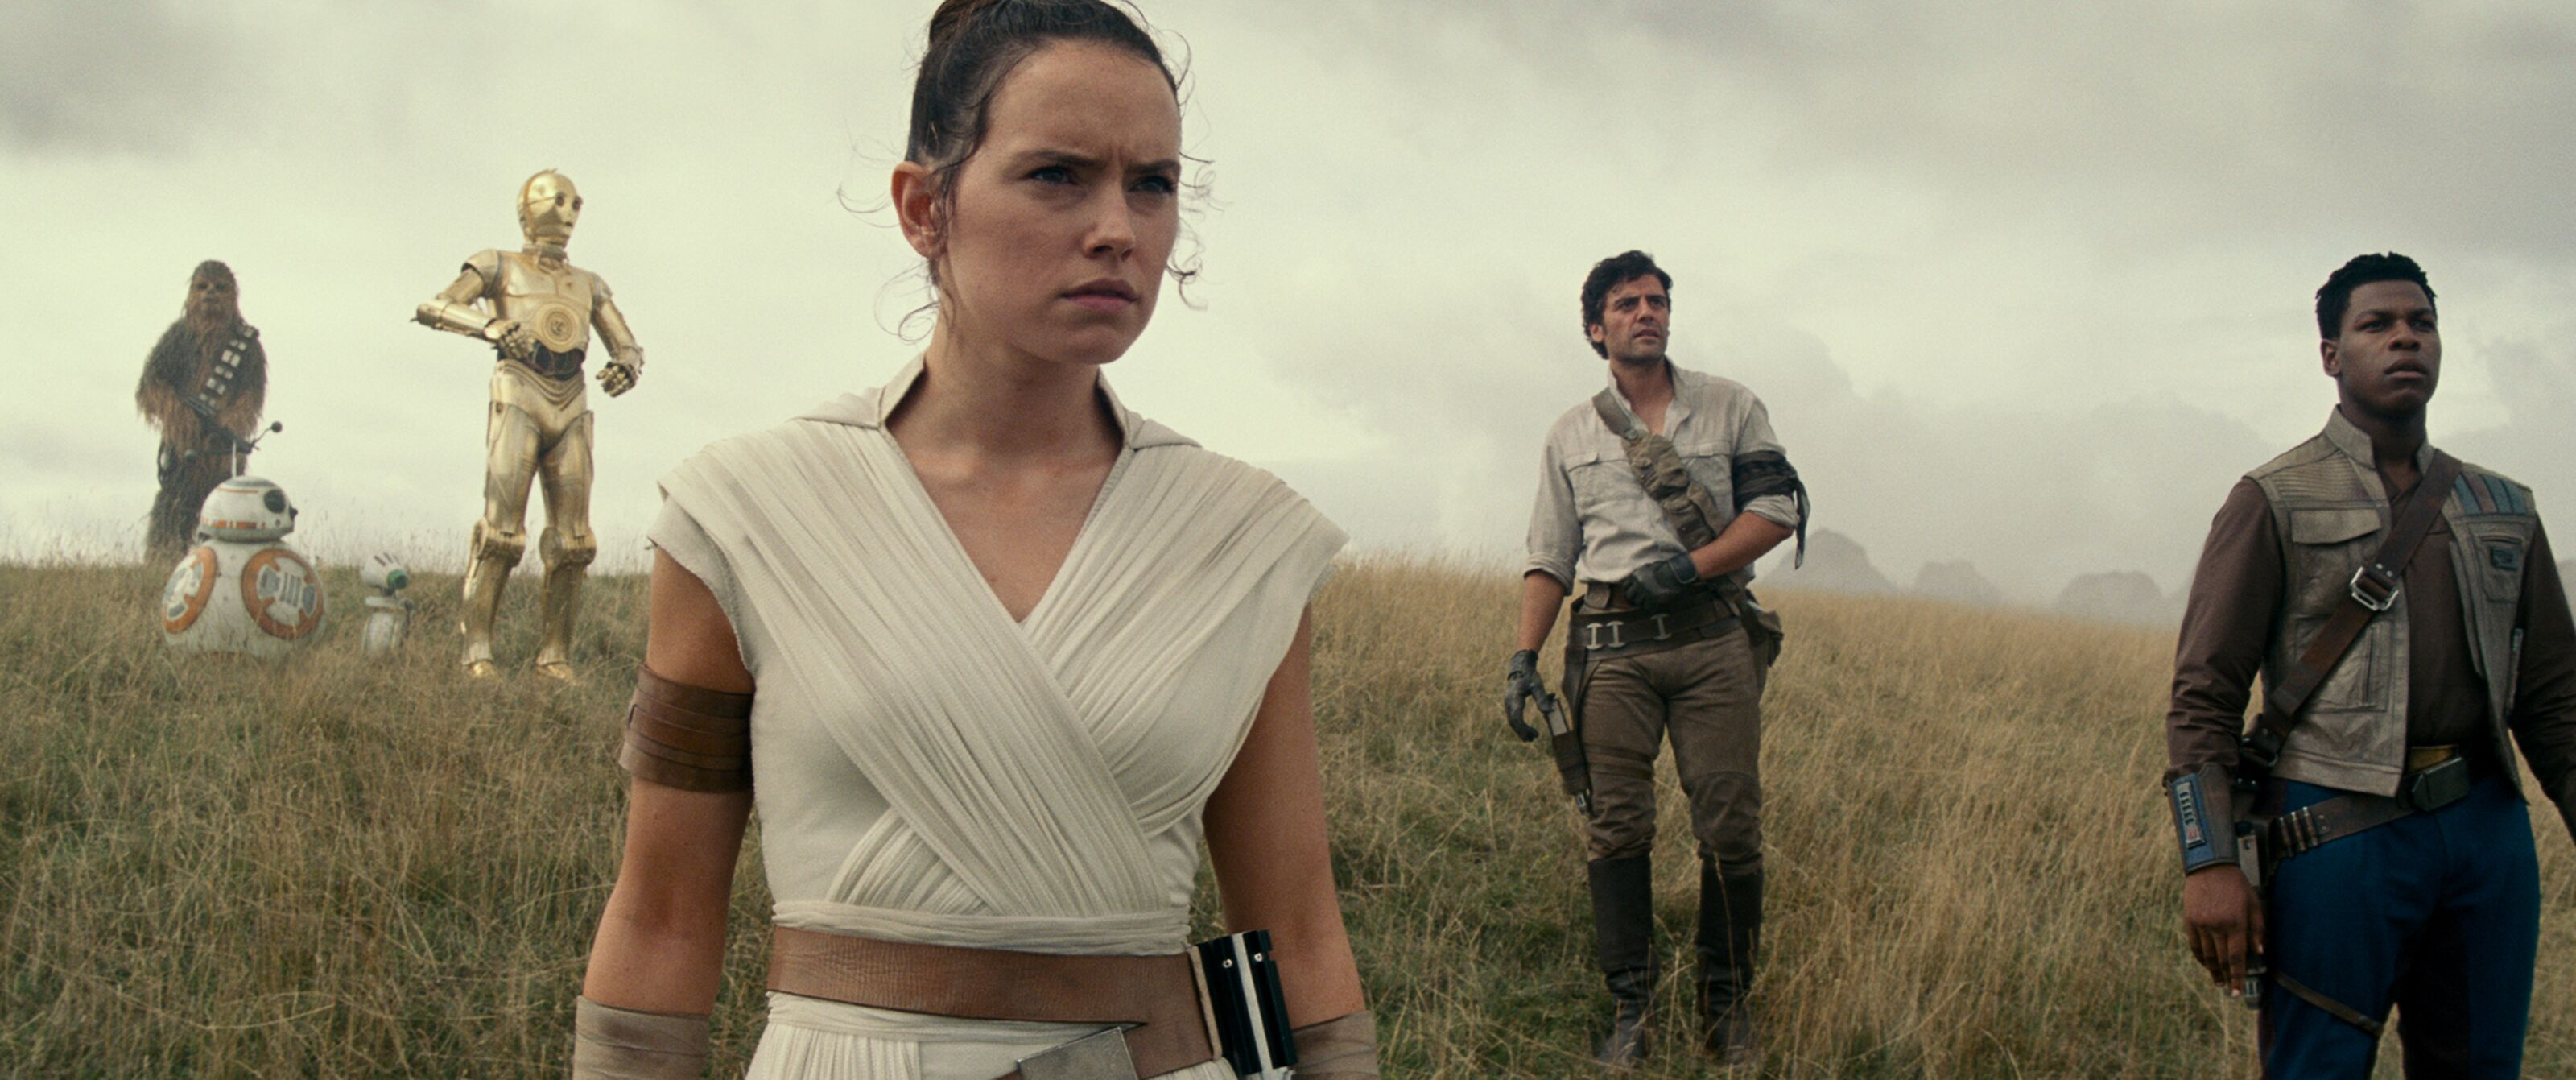 100 questions we want answered in Star Wars: The Rise of Skywalker